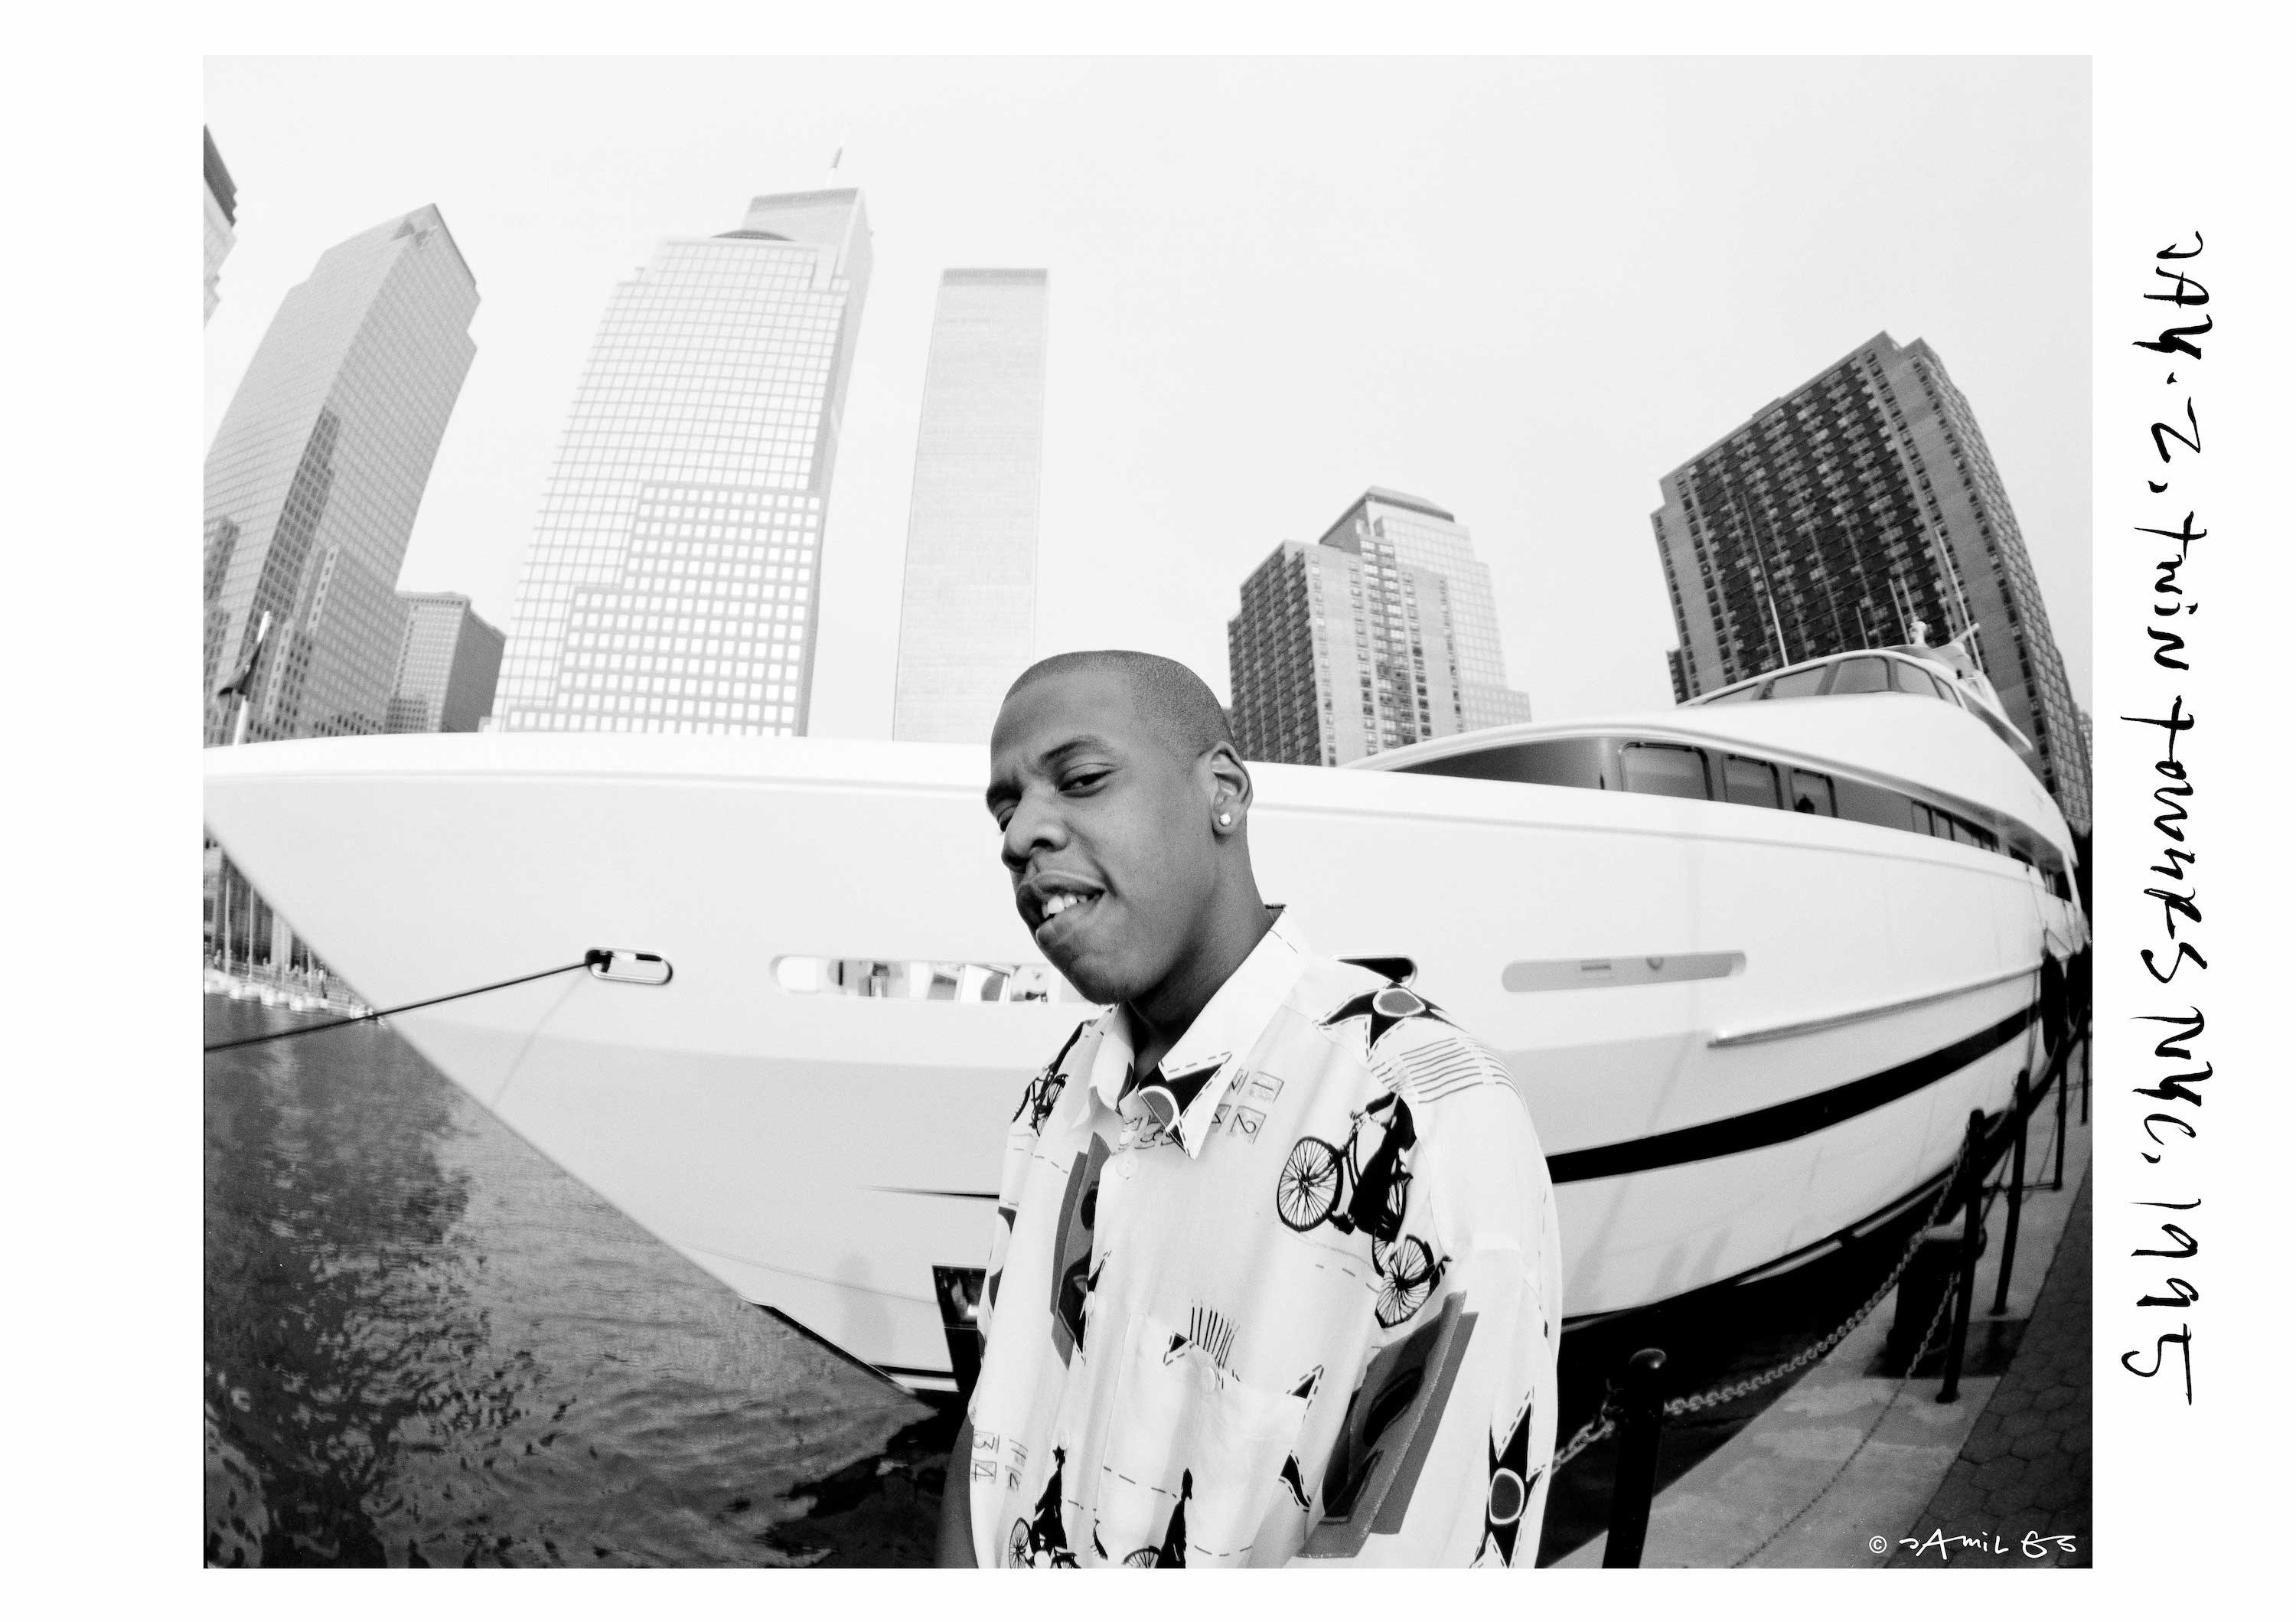 The rapper Jay Z in front of a yacht in New York